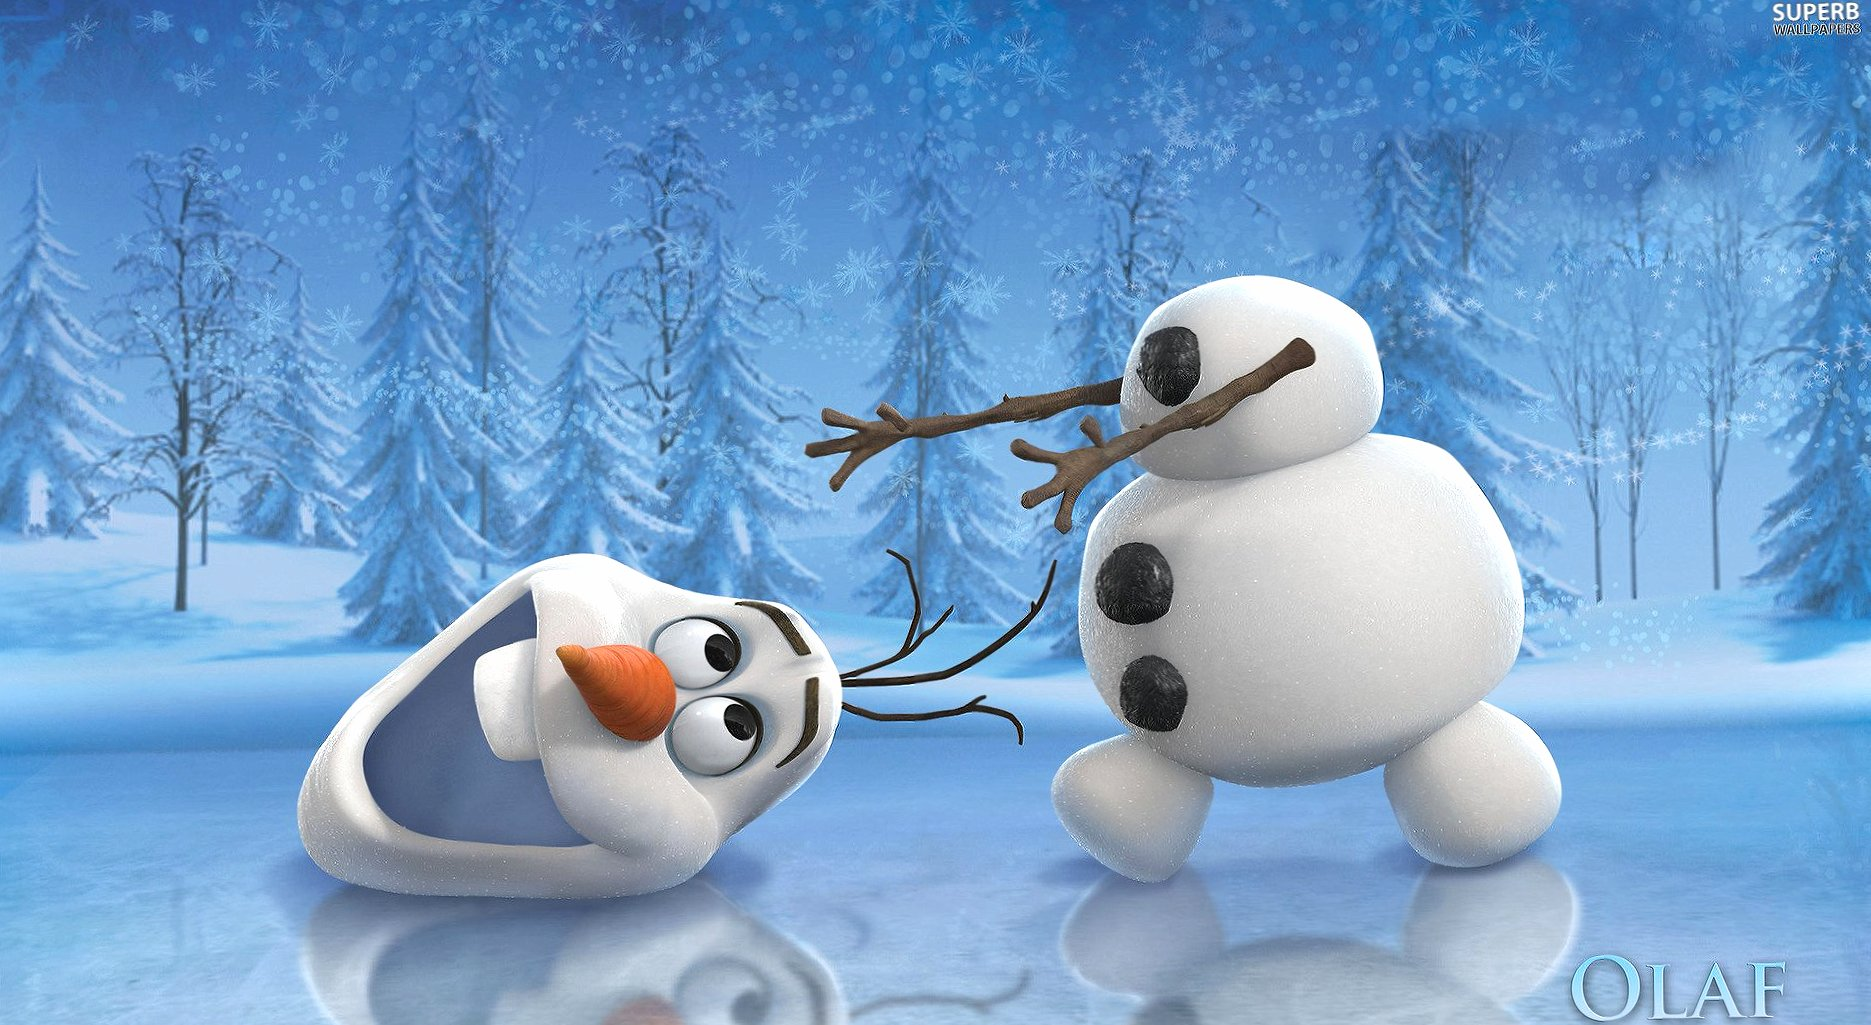 Frozen olaf wallpapers HD quality